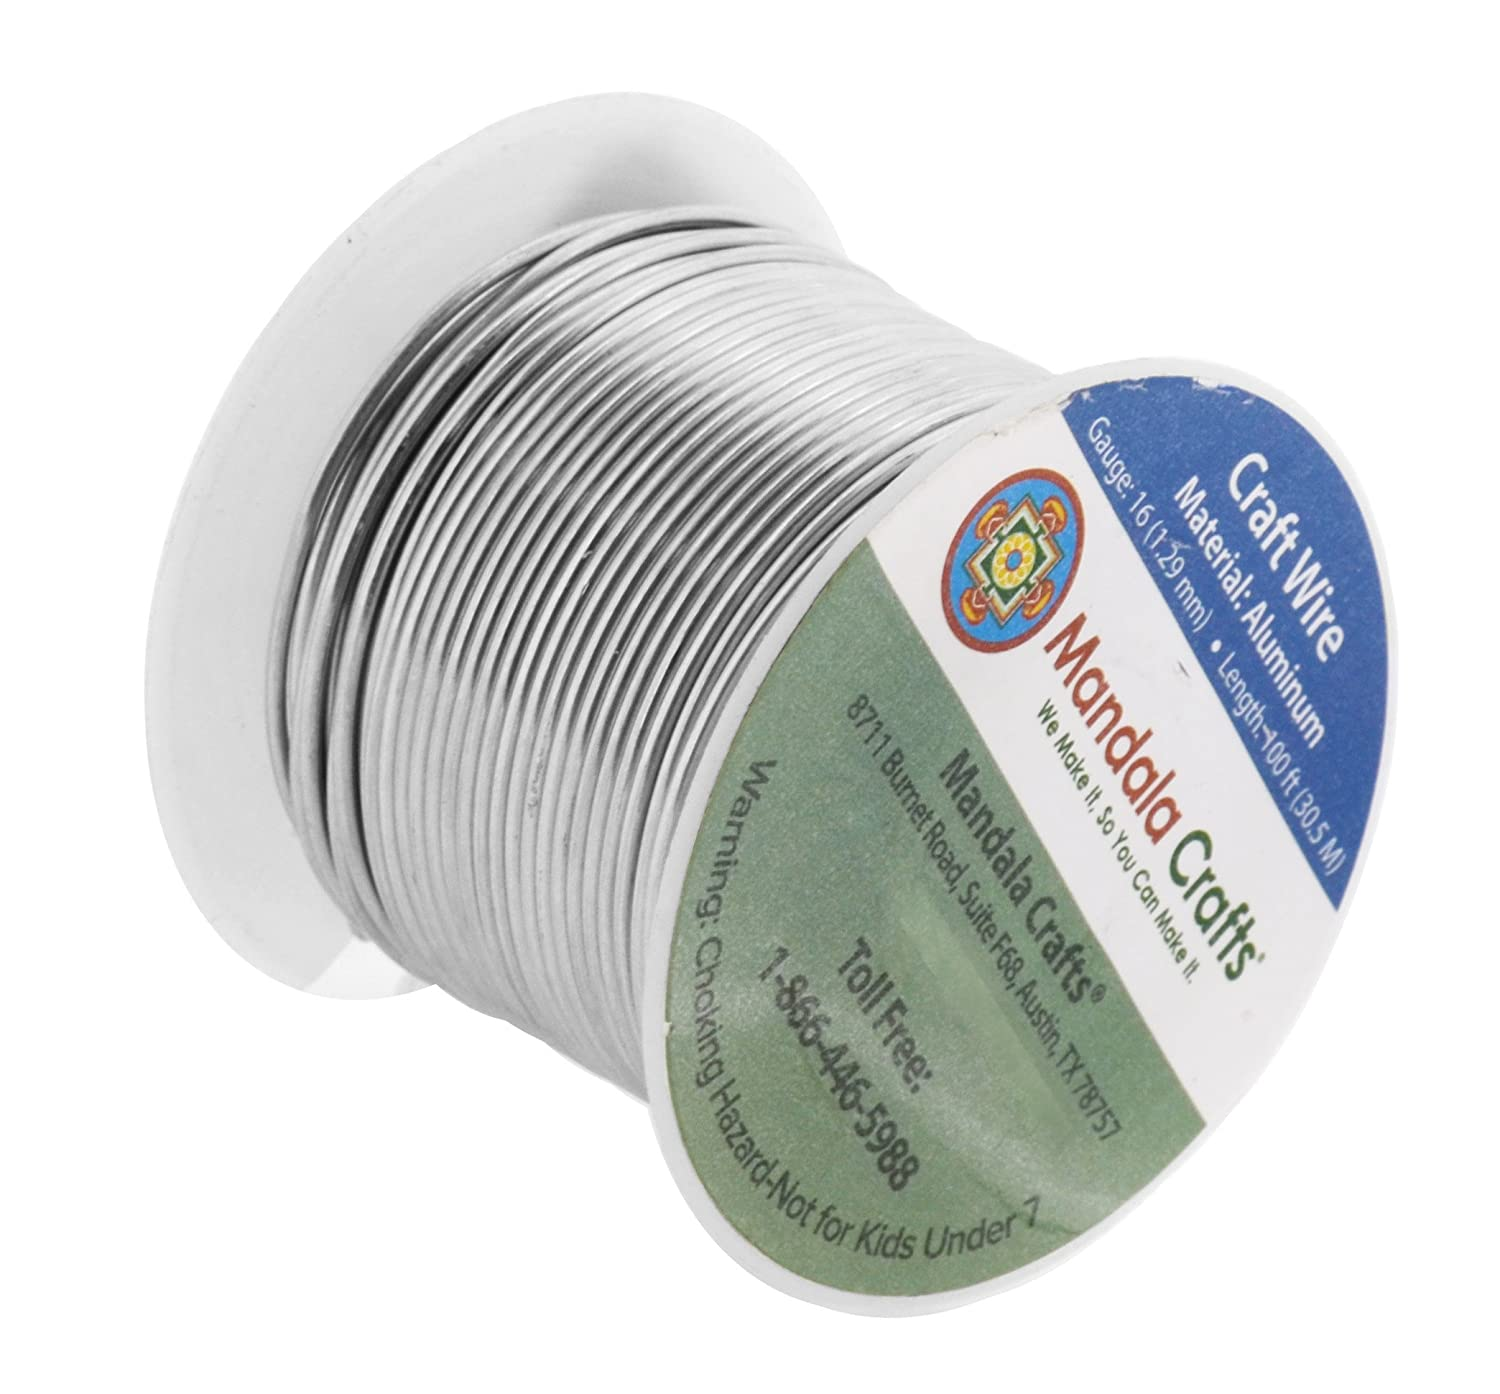 Awesome 12 Gauge Aluminum Craft Wire Crest - The Wire - magnox.info